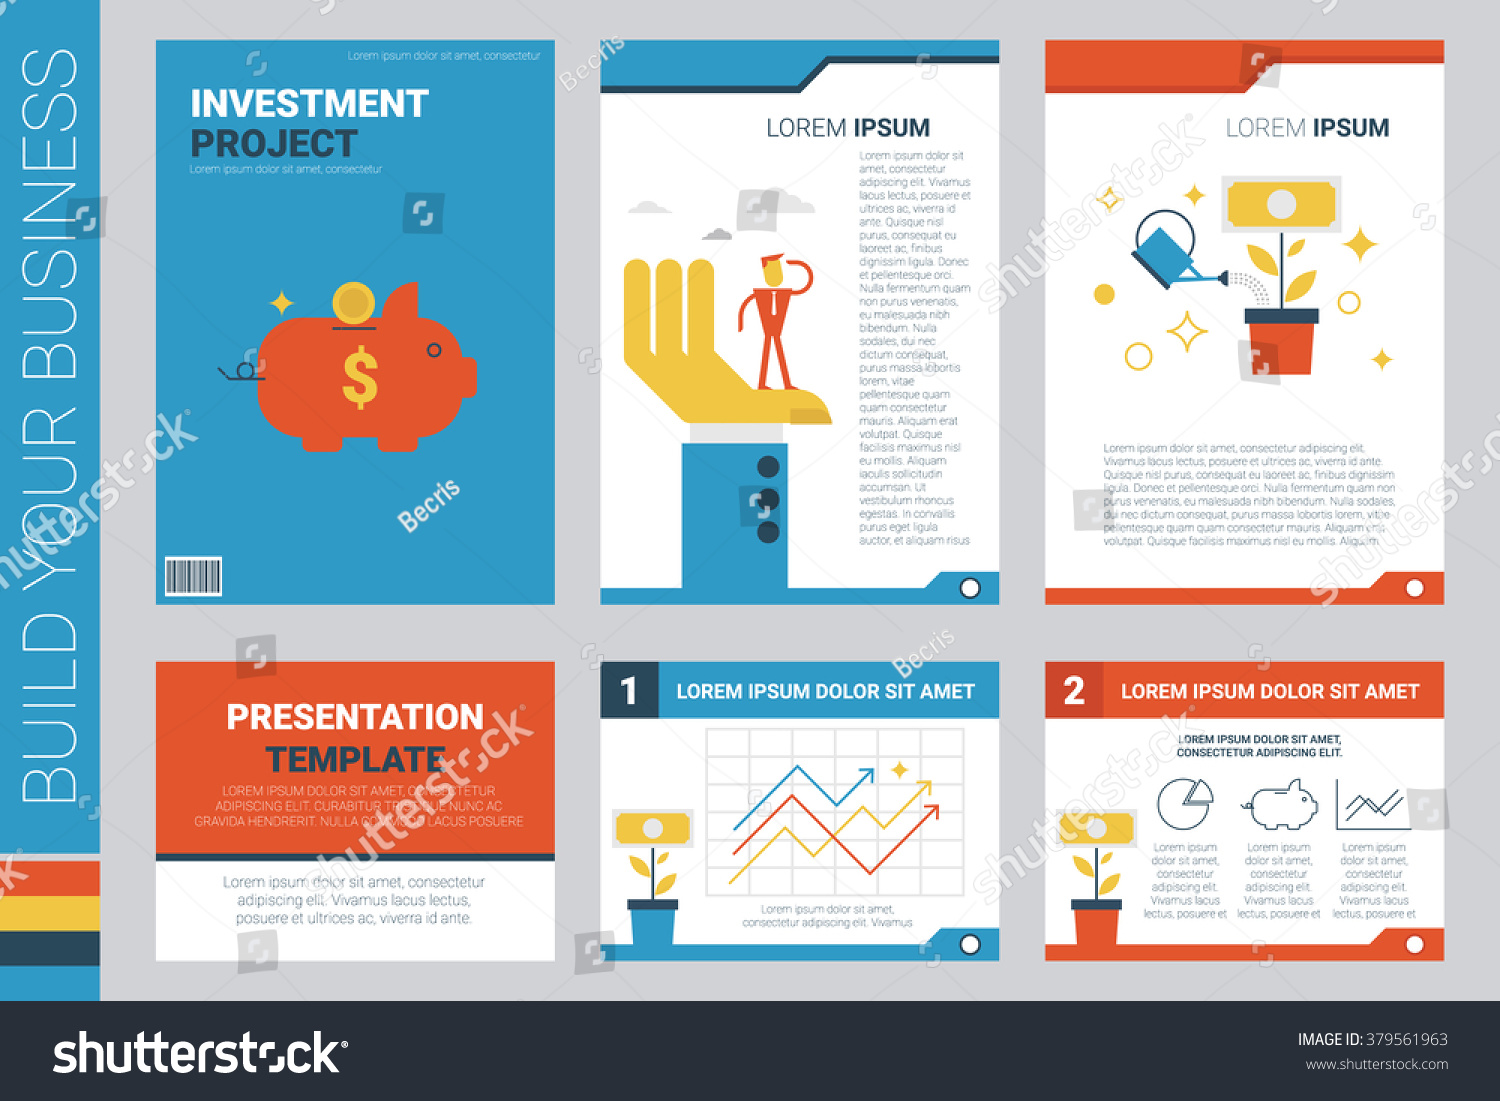 investment project book cover presentation template stock vector, Presentation templates